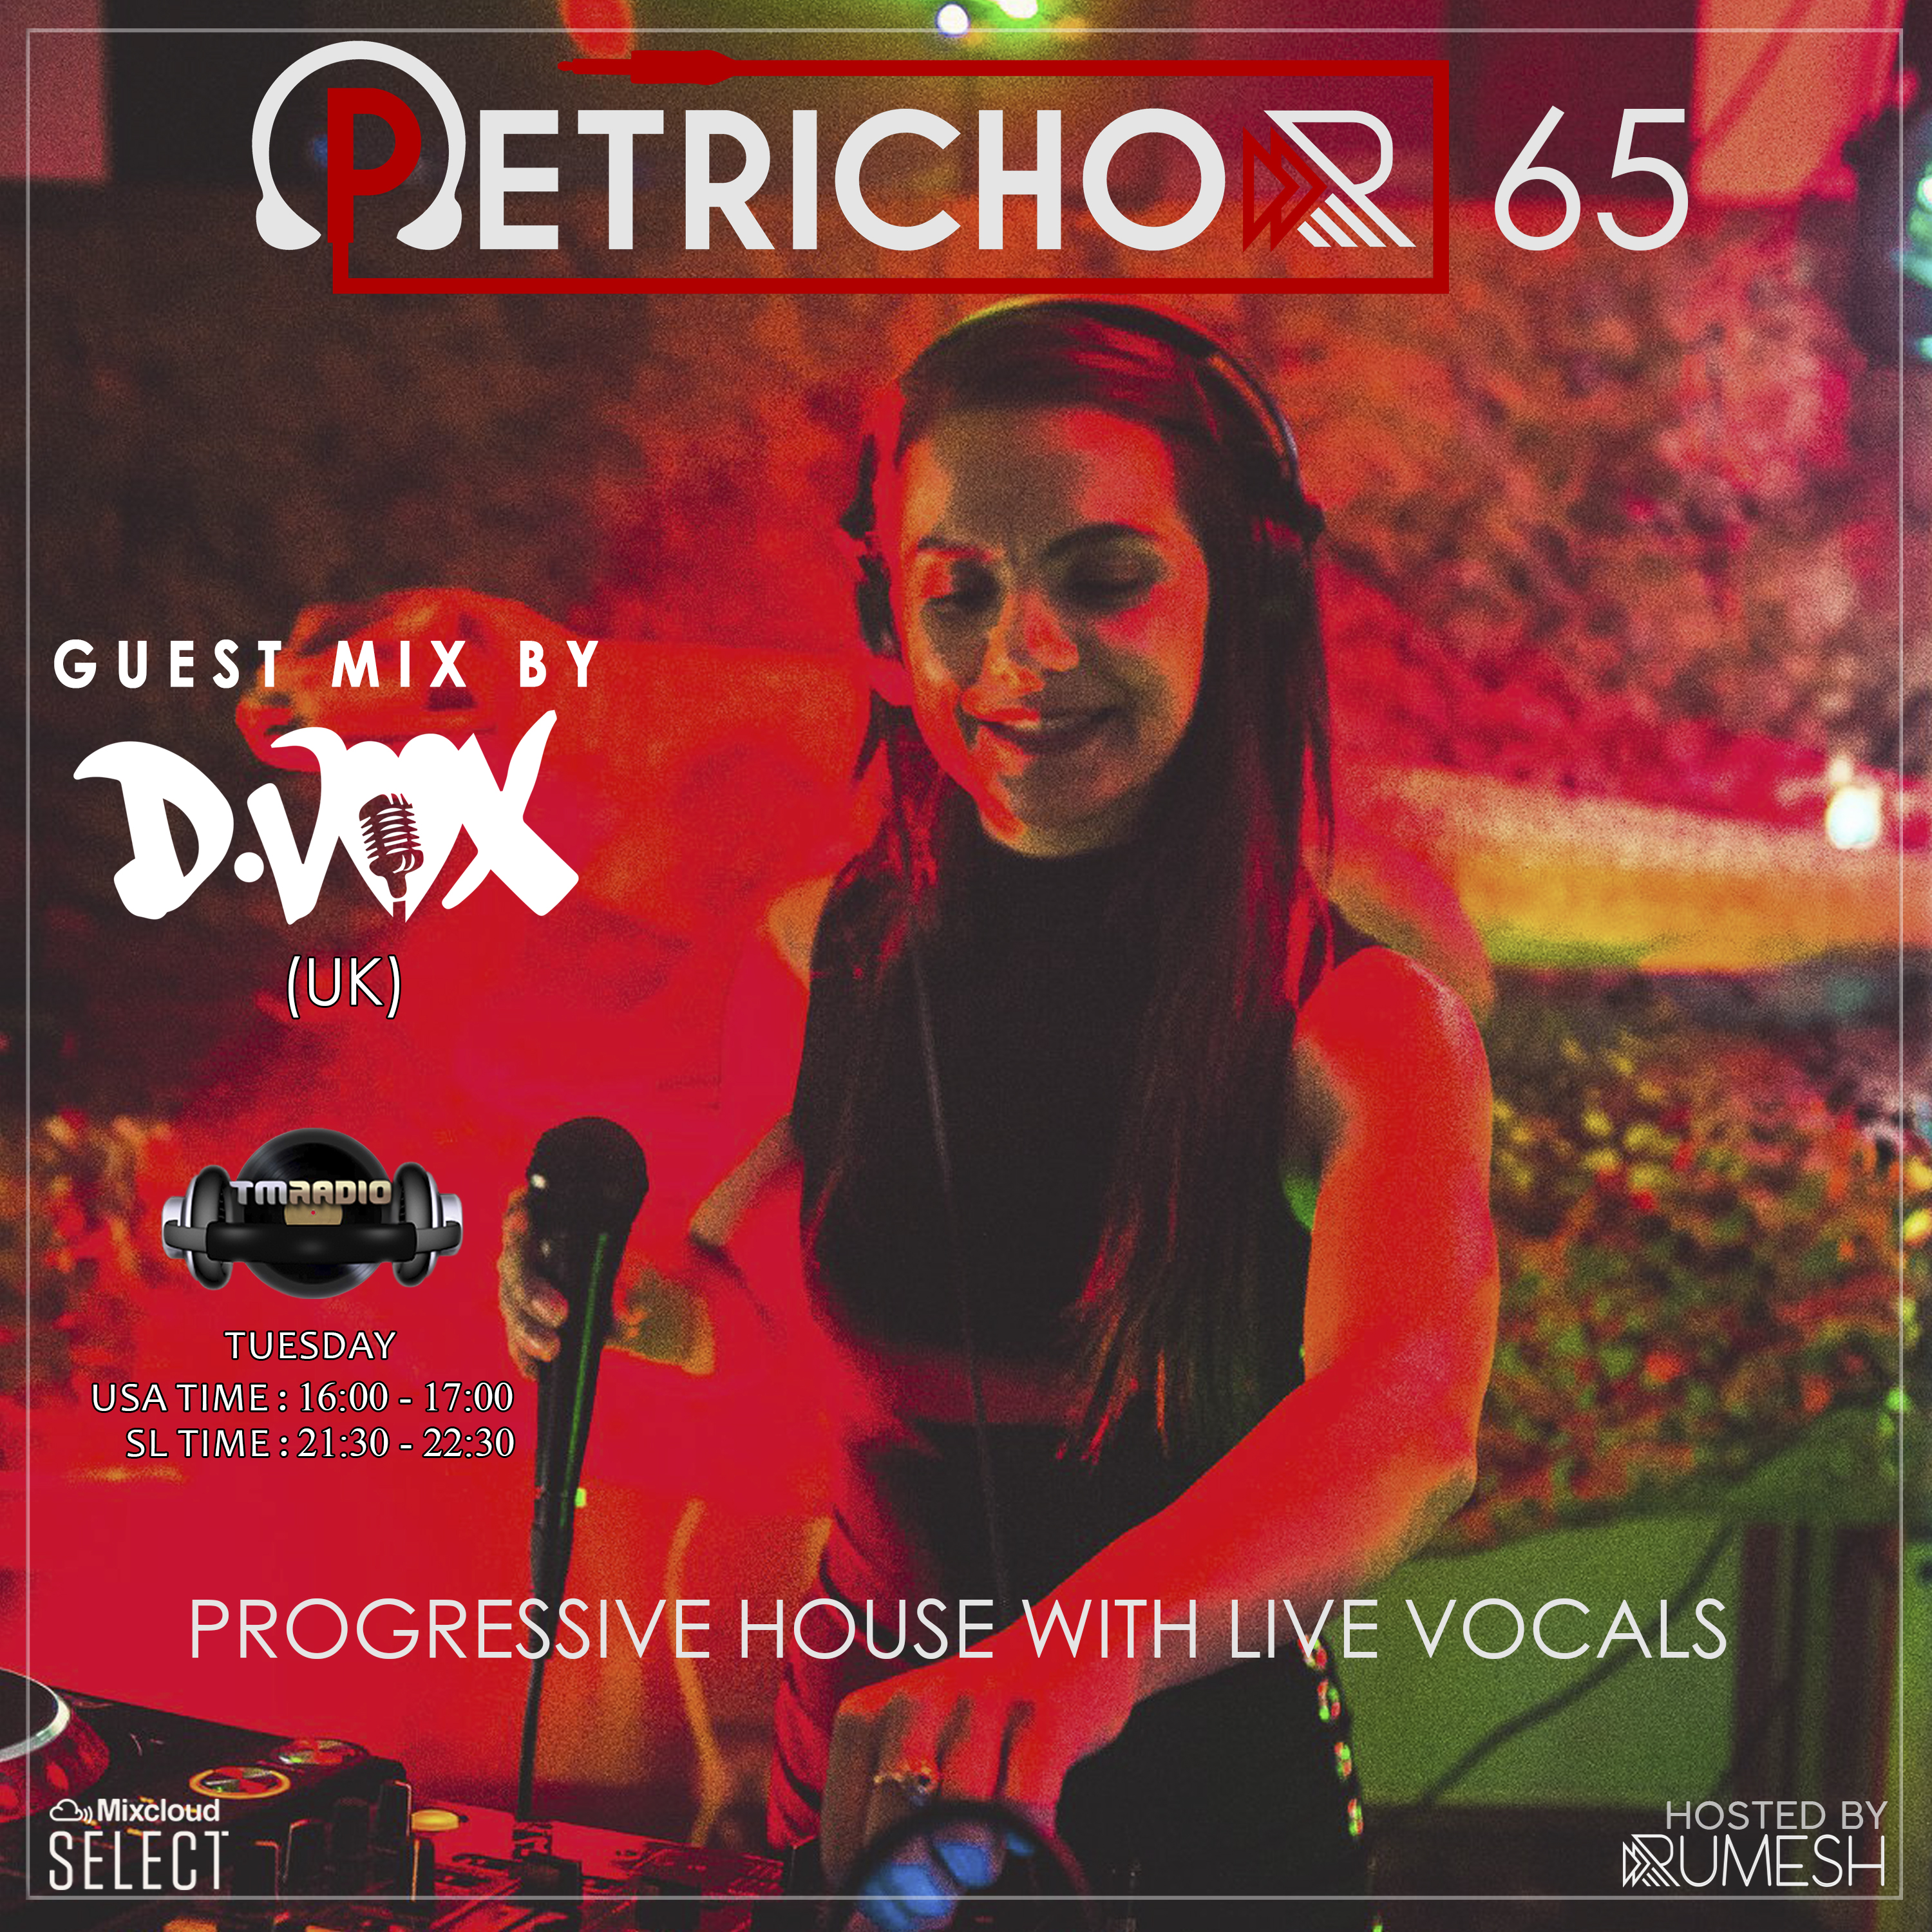 Petrichor 65 guest mix by D-Vox (UK) (from February 4th)